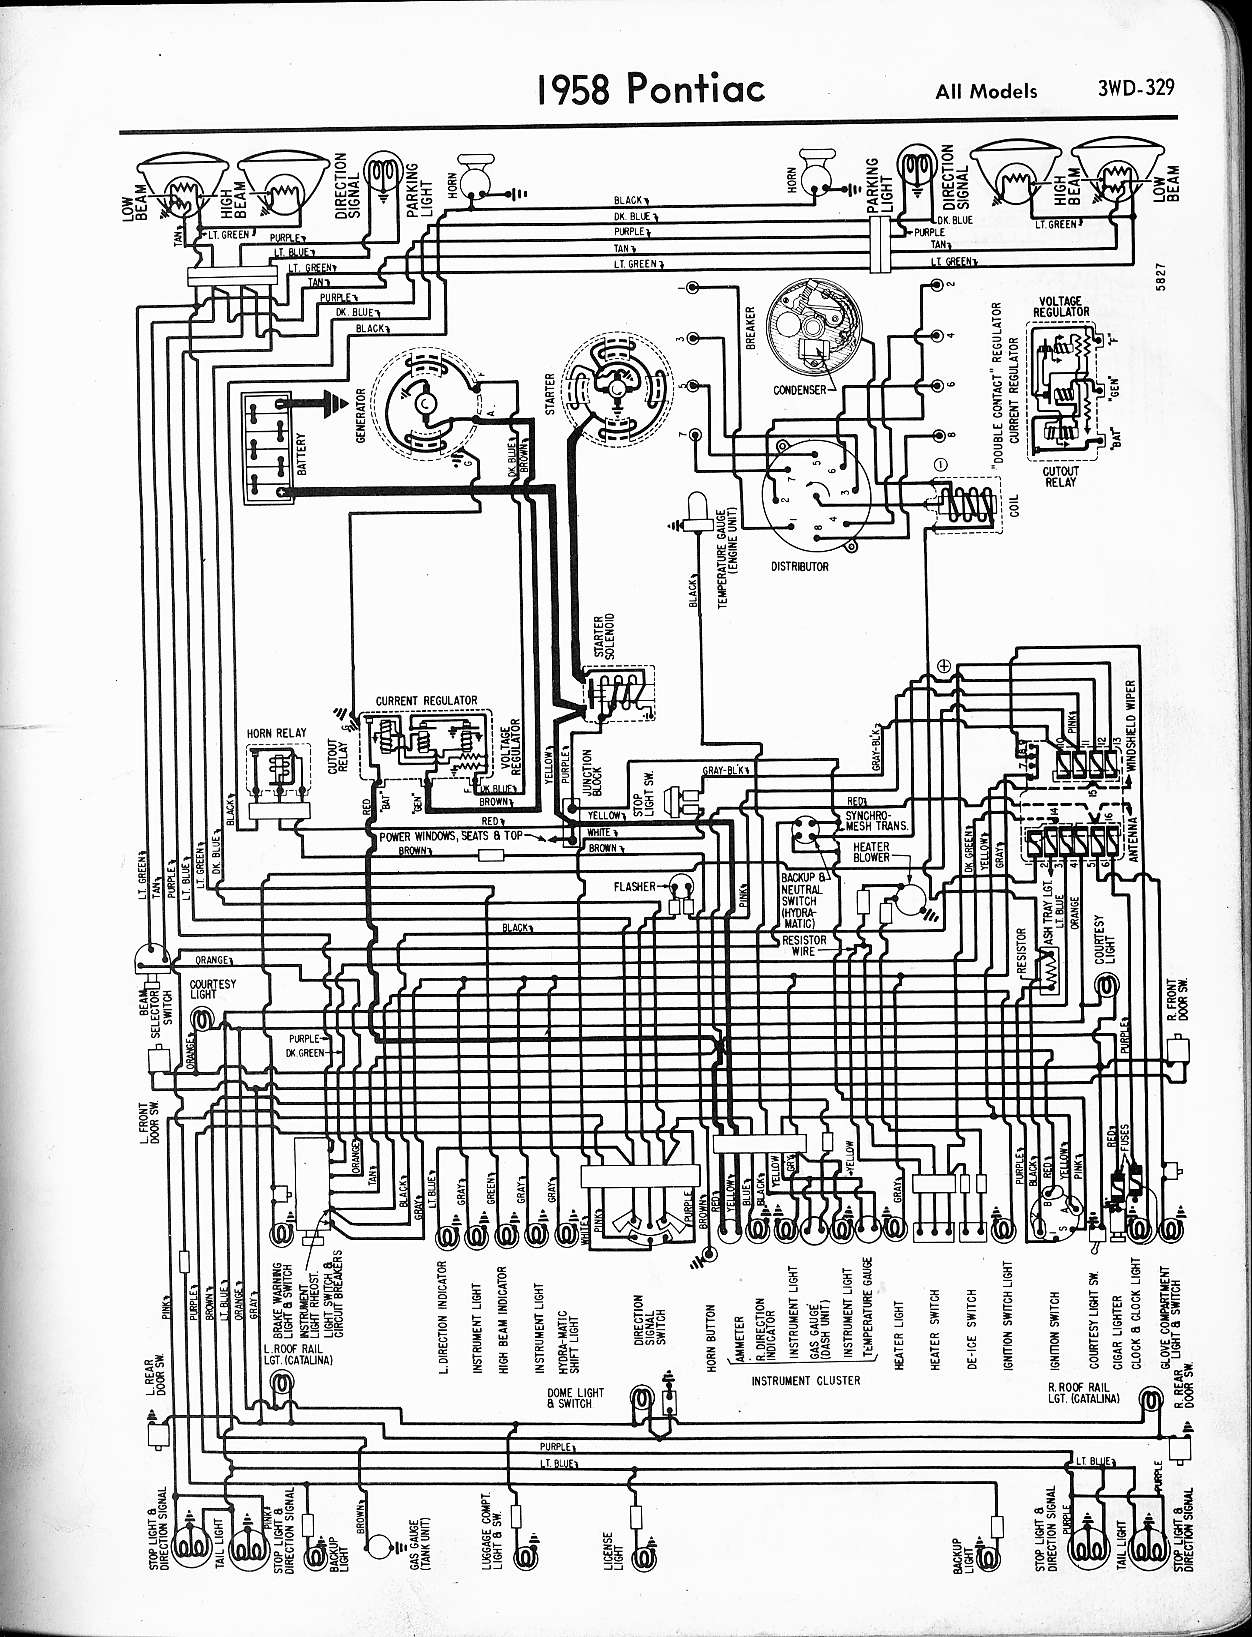 Wiring Schematic For 1995 Pontiac Bonneville Real Diagram Triumph Thruxton Schematics Rh Caltech Ctp Com 1993